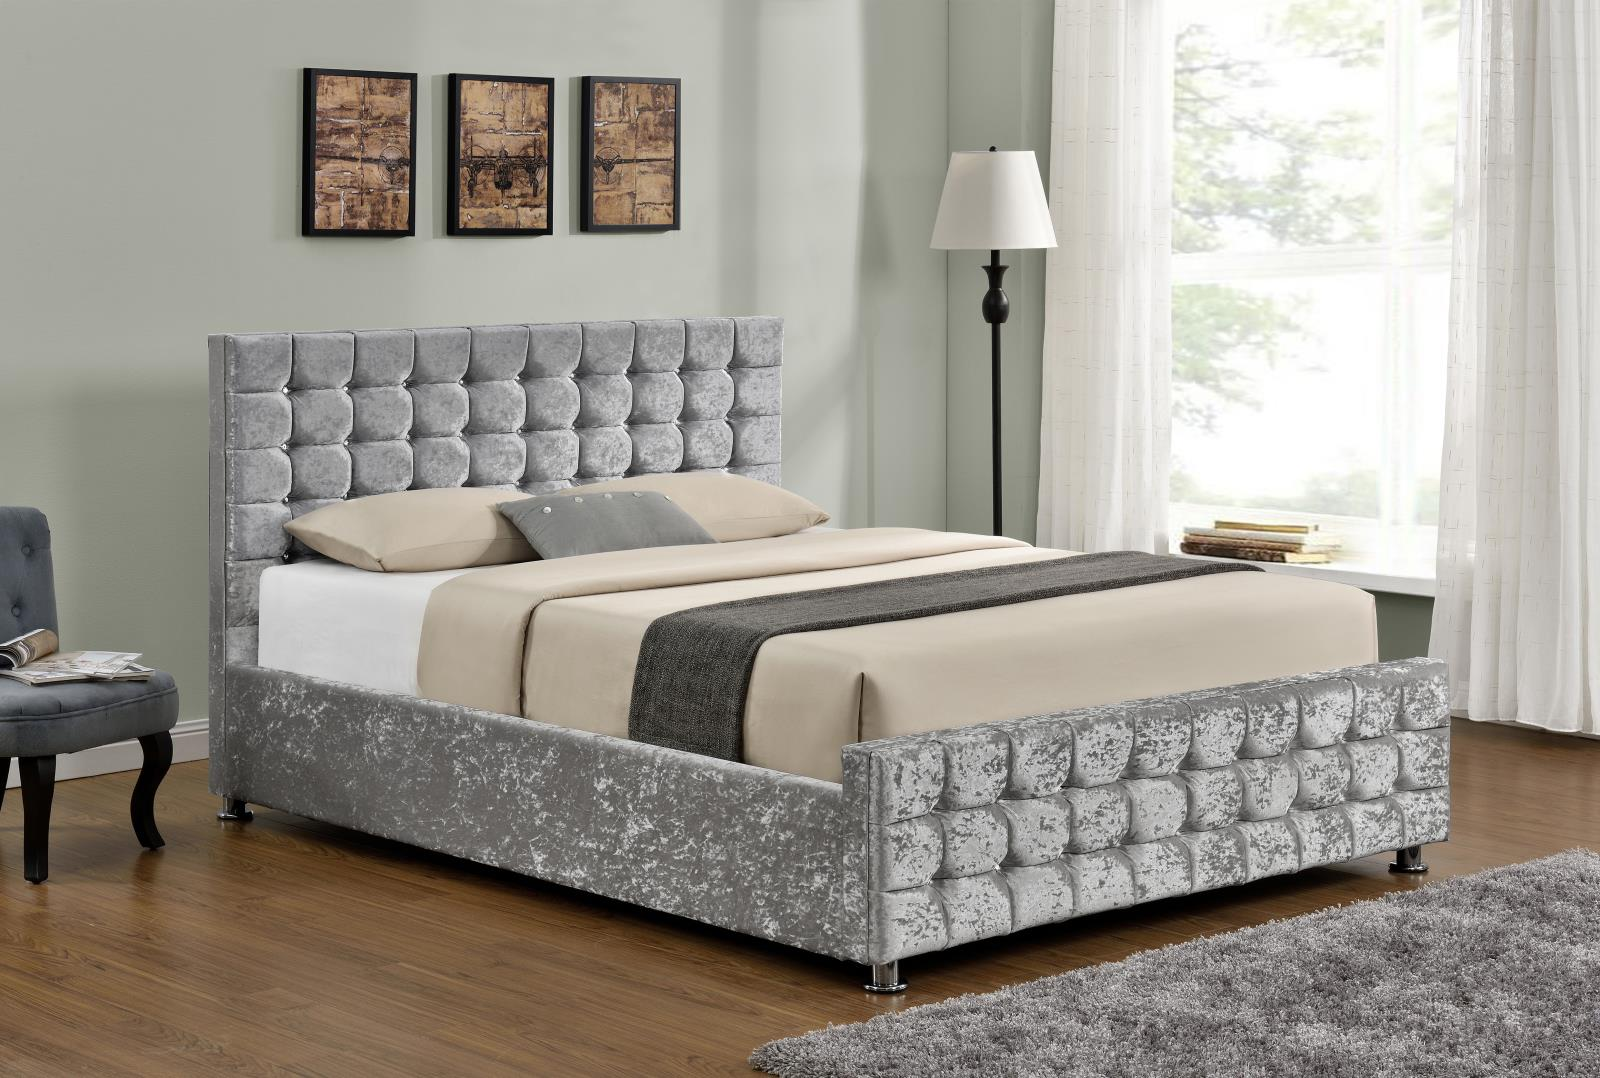 boston silver crushed velvet diamante ottoman bed frame. Black Bedroom Furniture Sets. Home Design Ideas